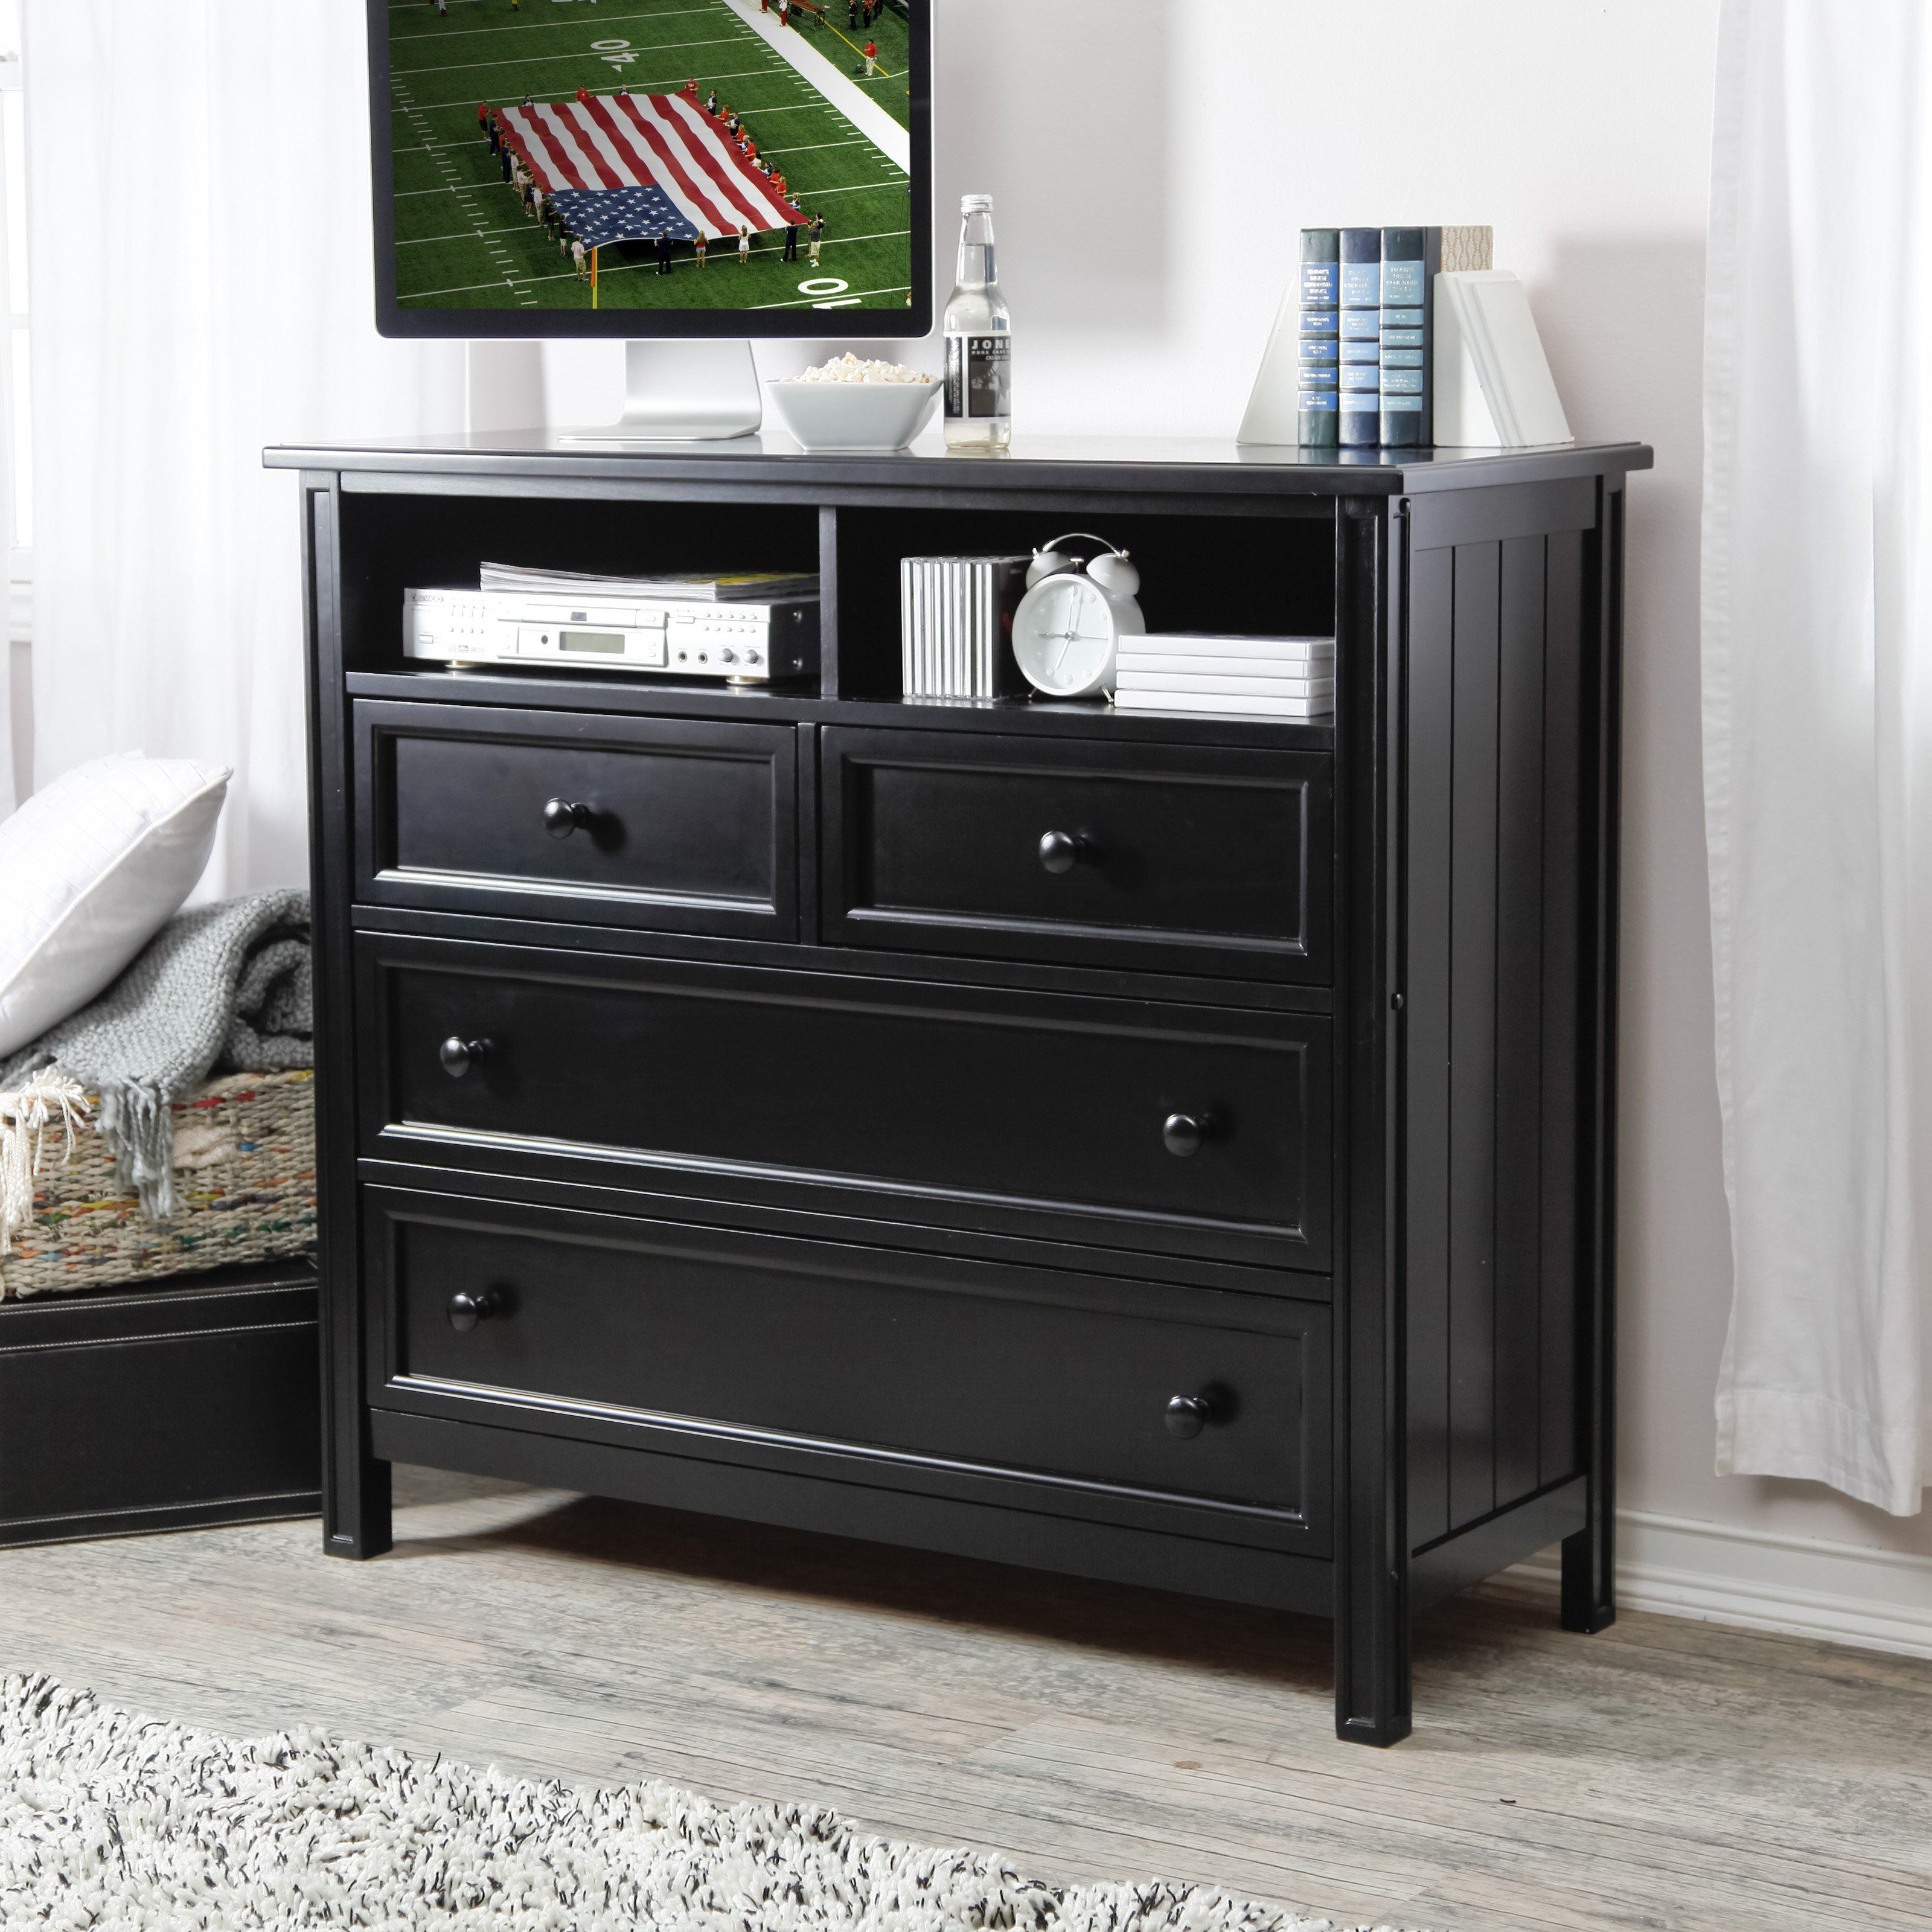 have to have it. belham living casey media chest - black - $499.99